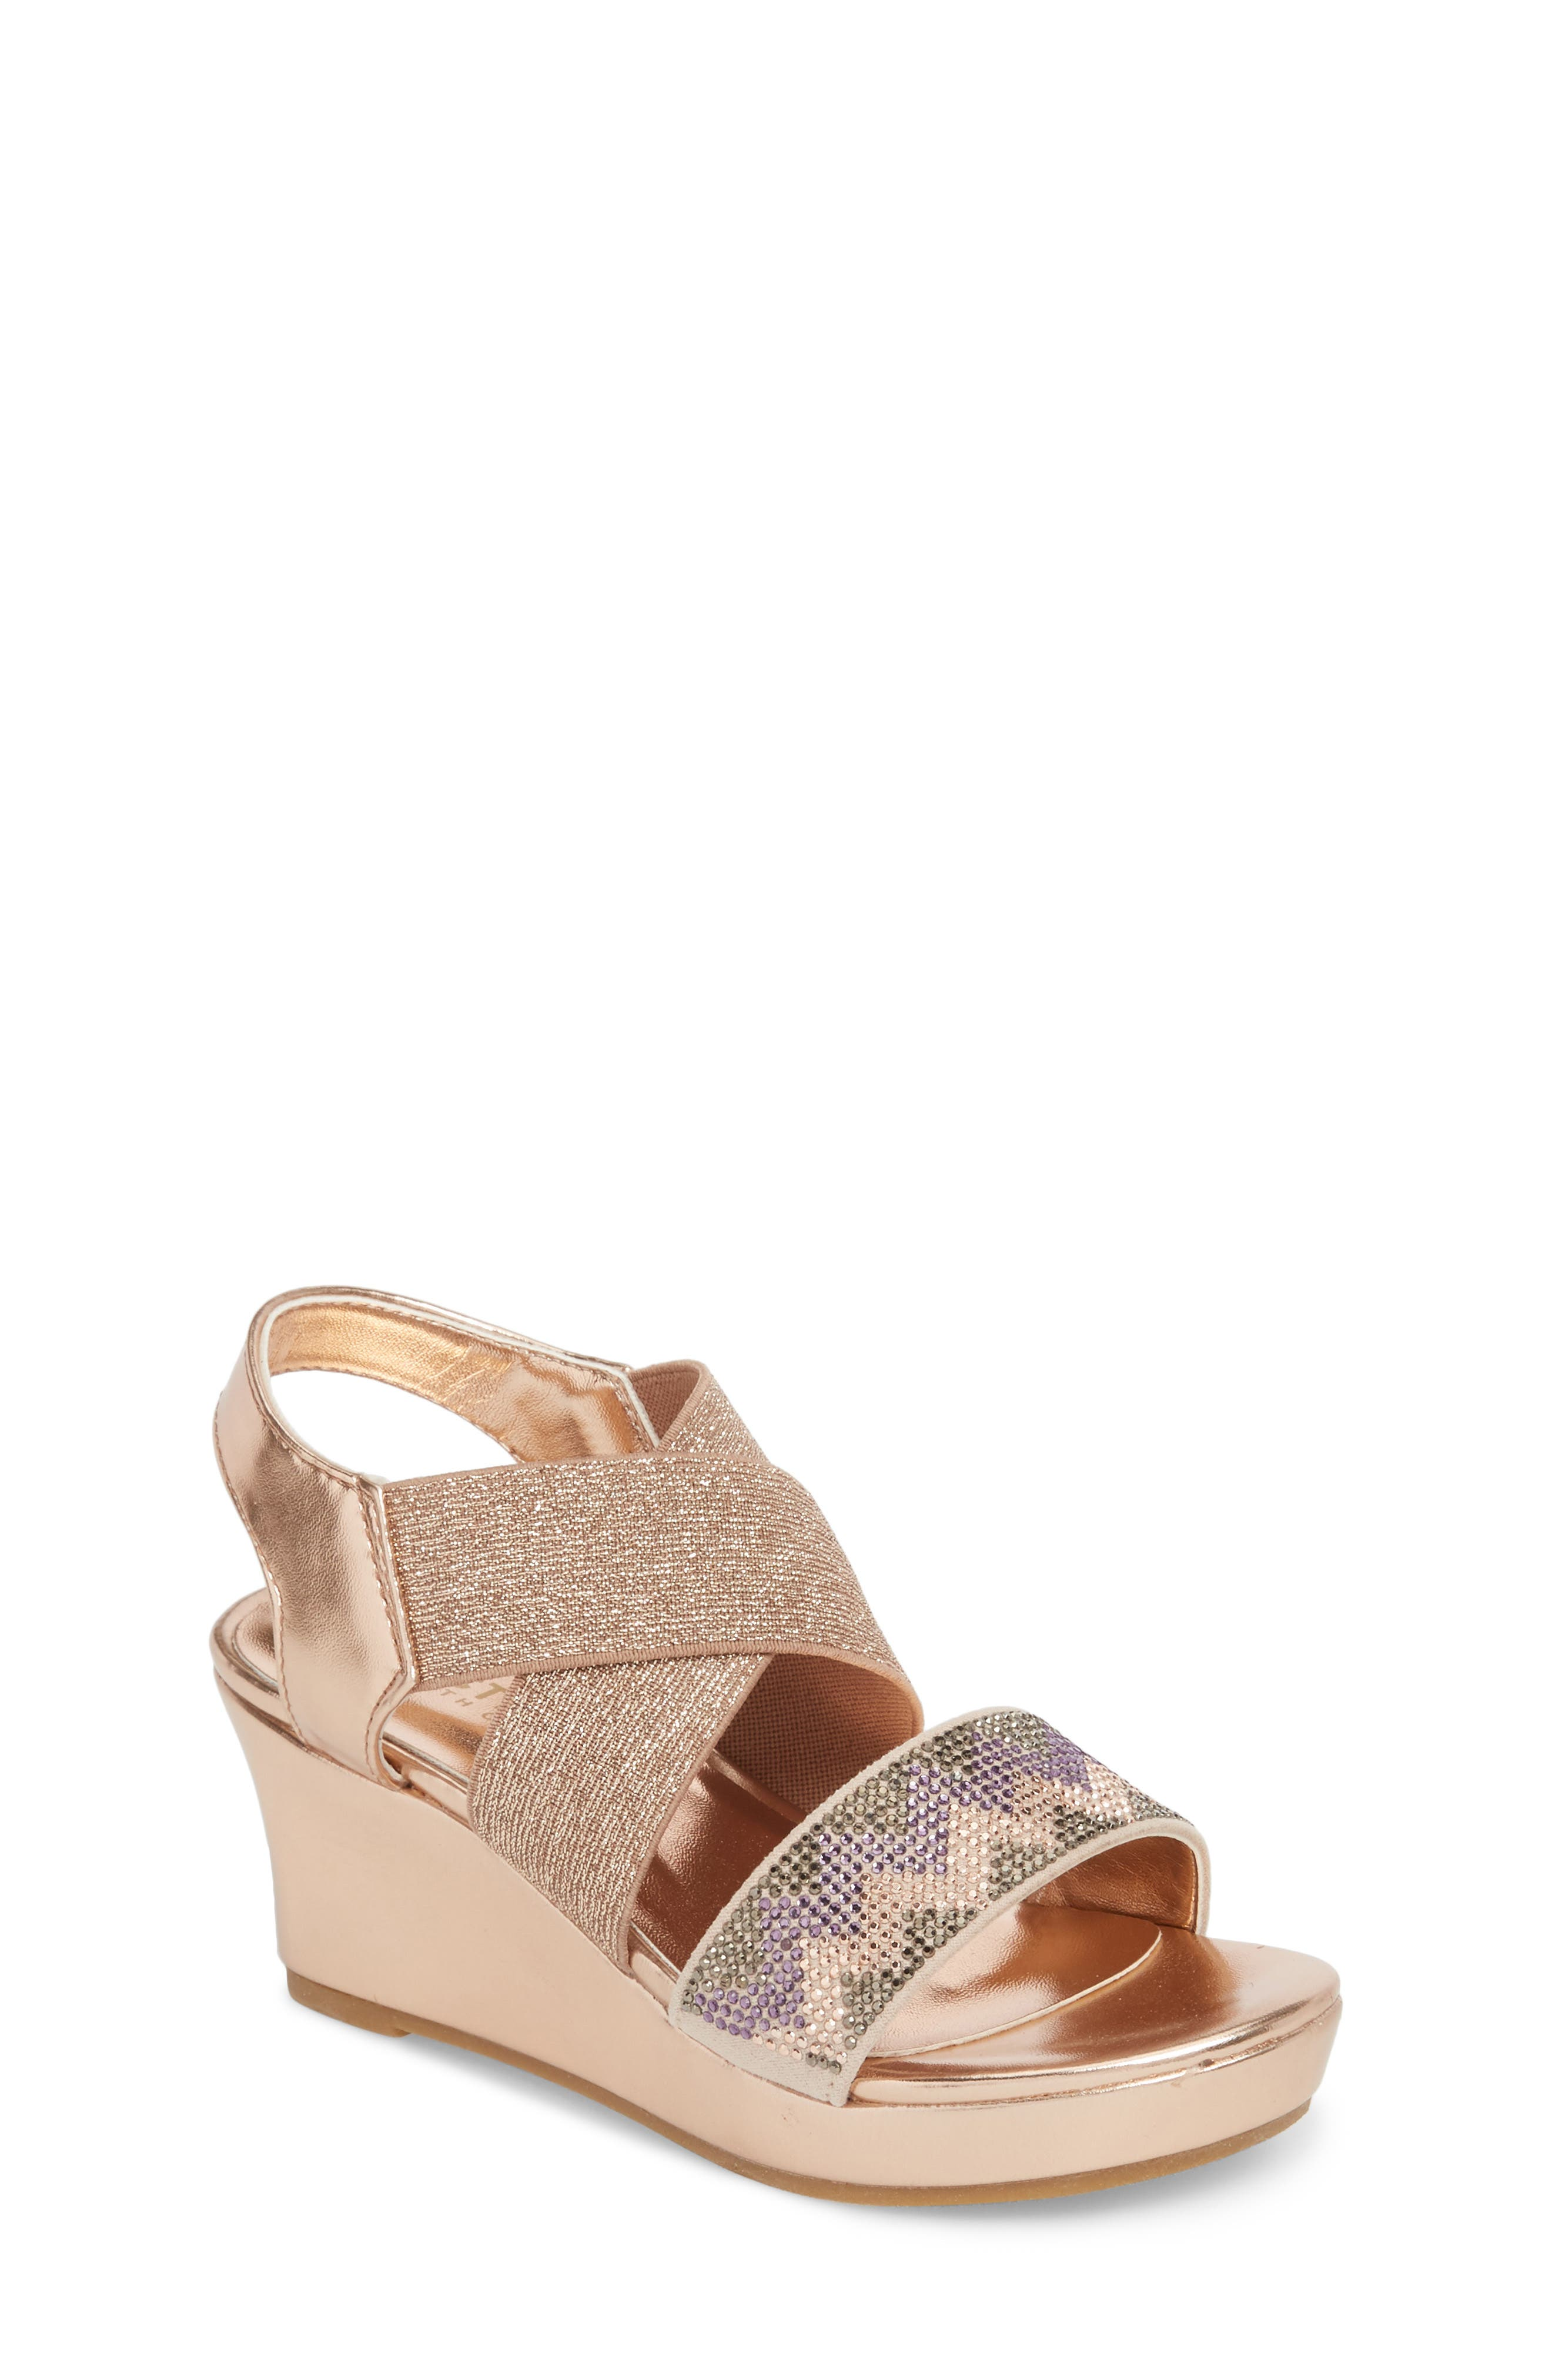 Reaction Kenneth Cole Reed Mamba Embellished Wedge Sandal,                         Main,                         color, 220